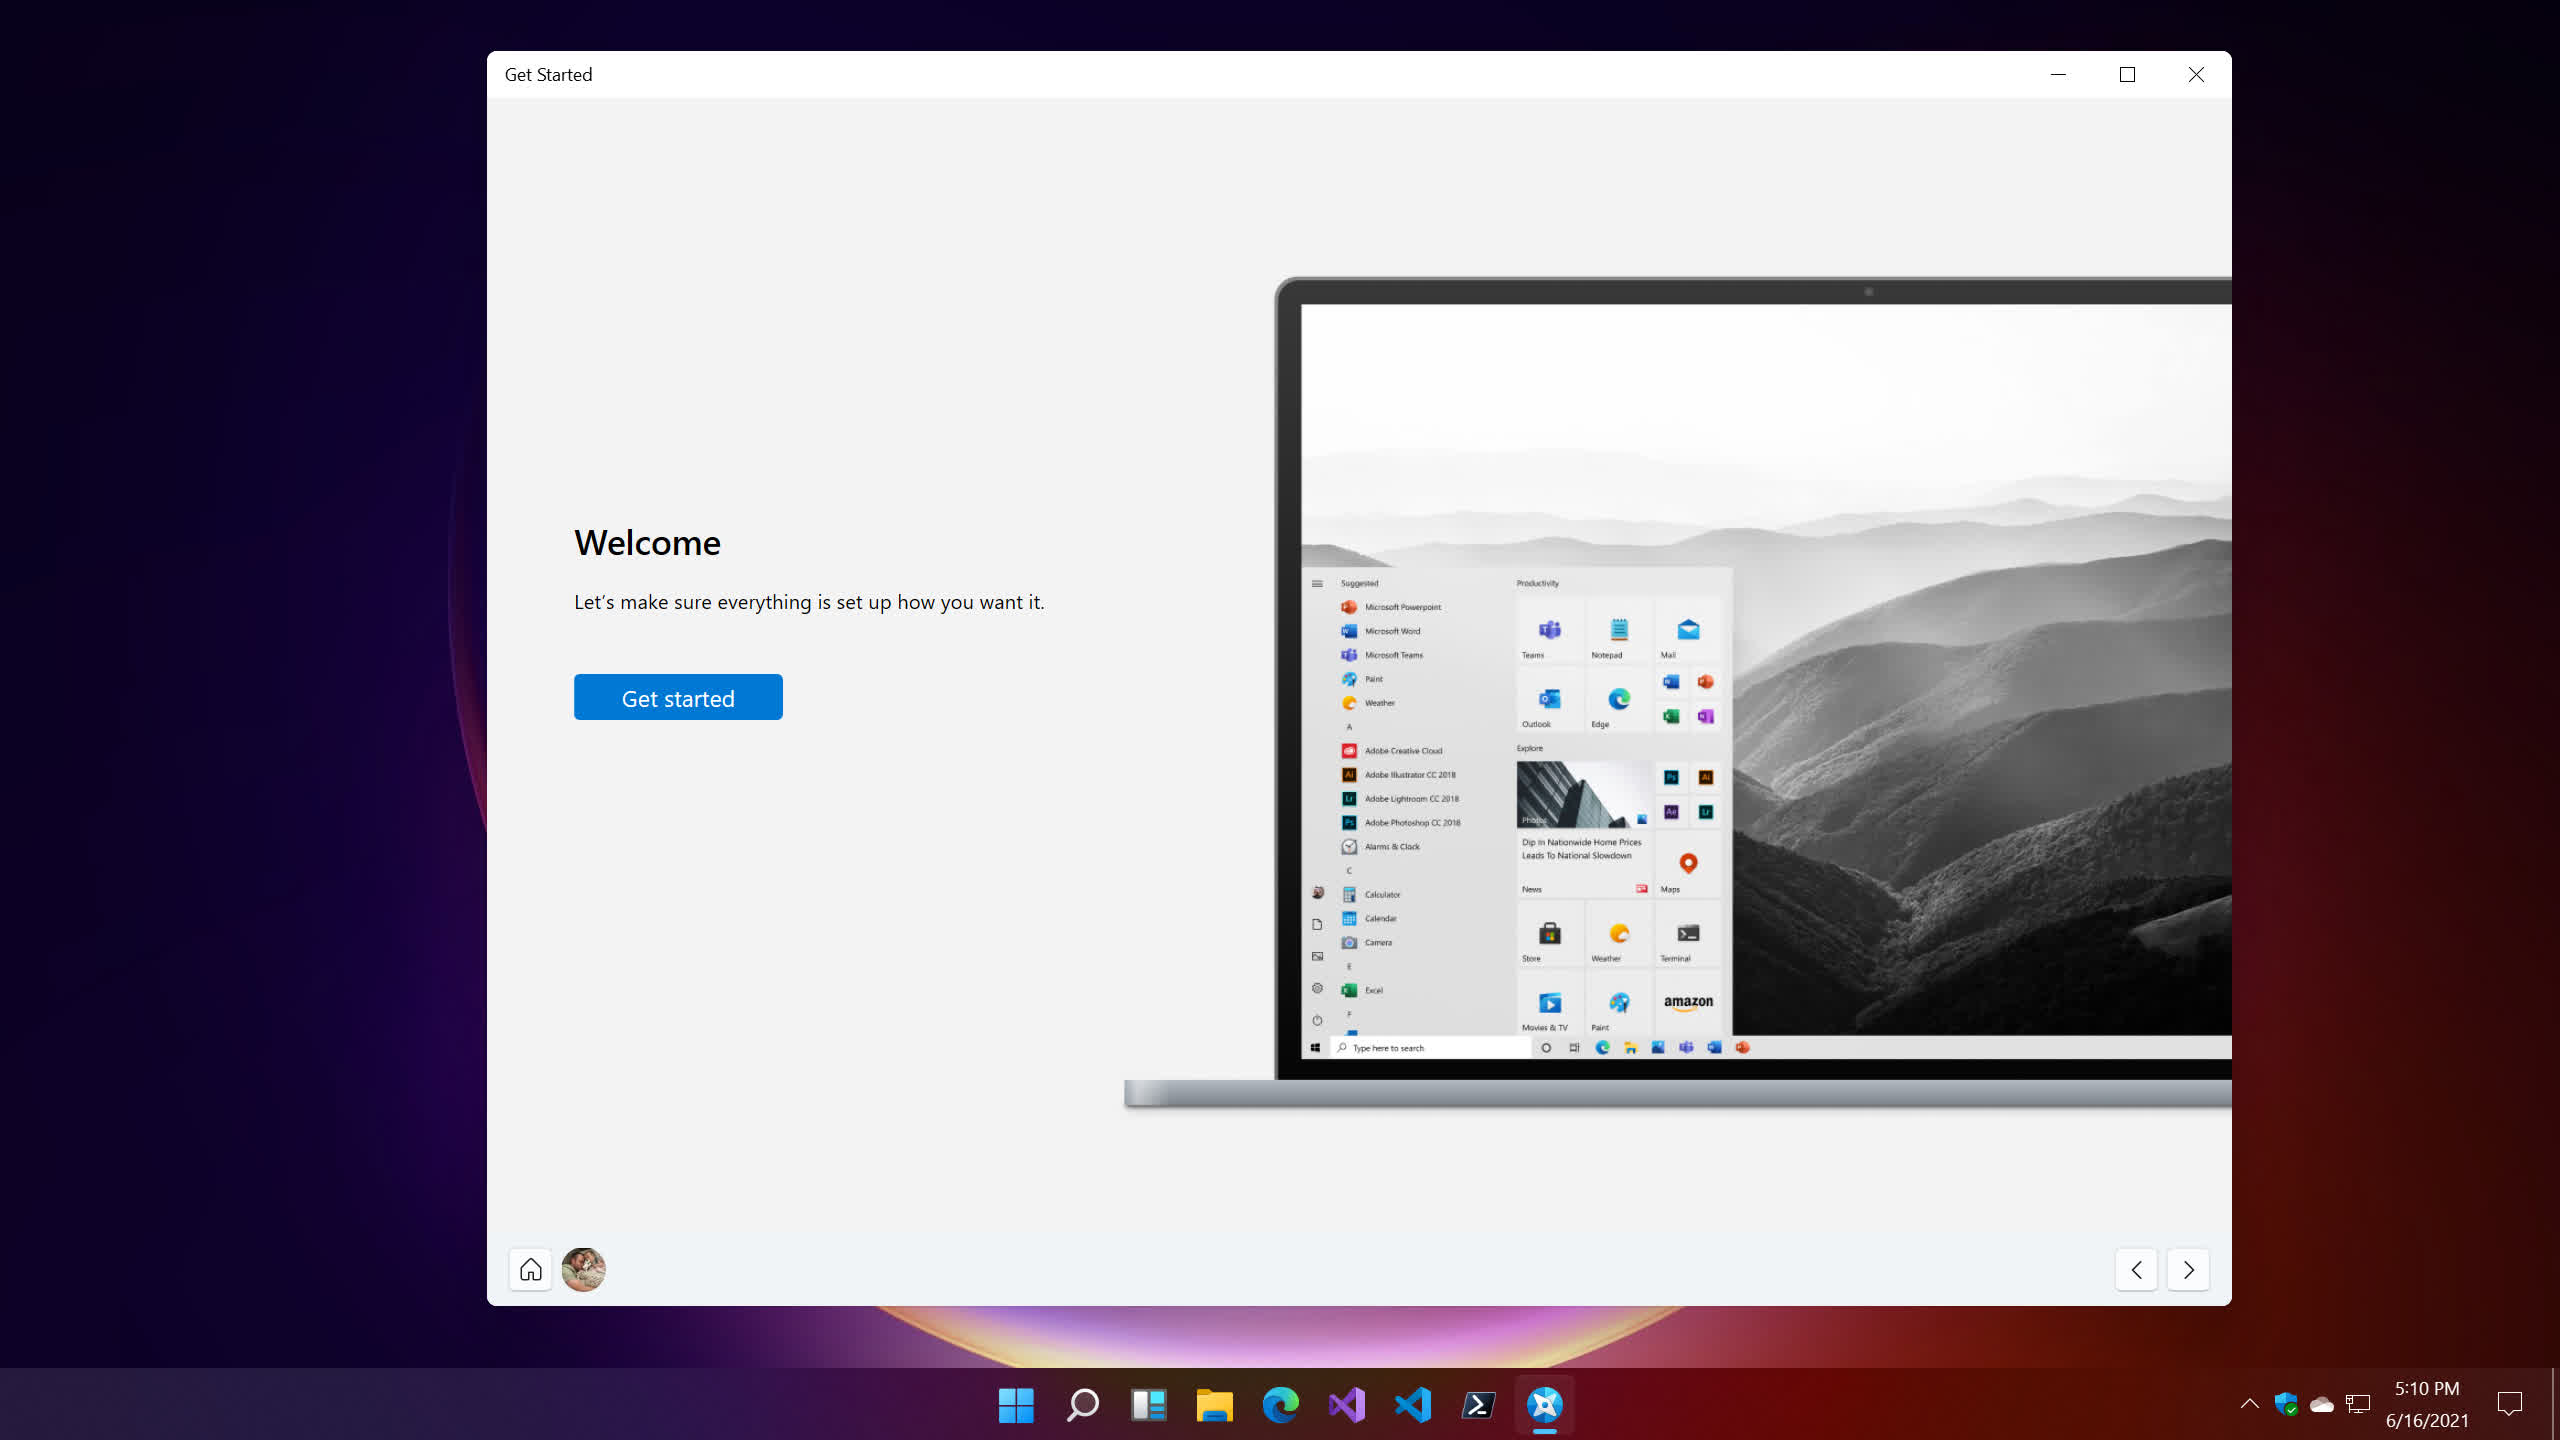 Windows 7 and 8 users can get a free upgrade path to Windows 11